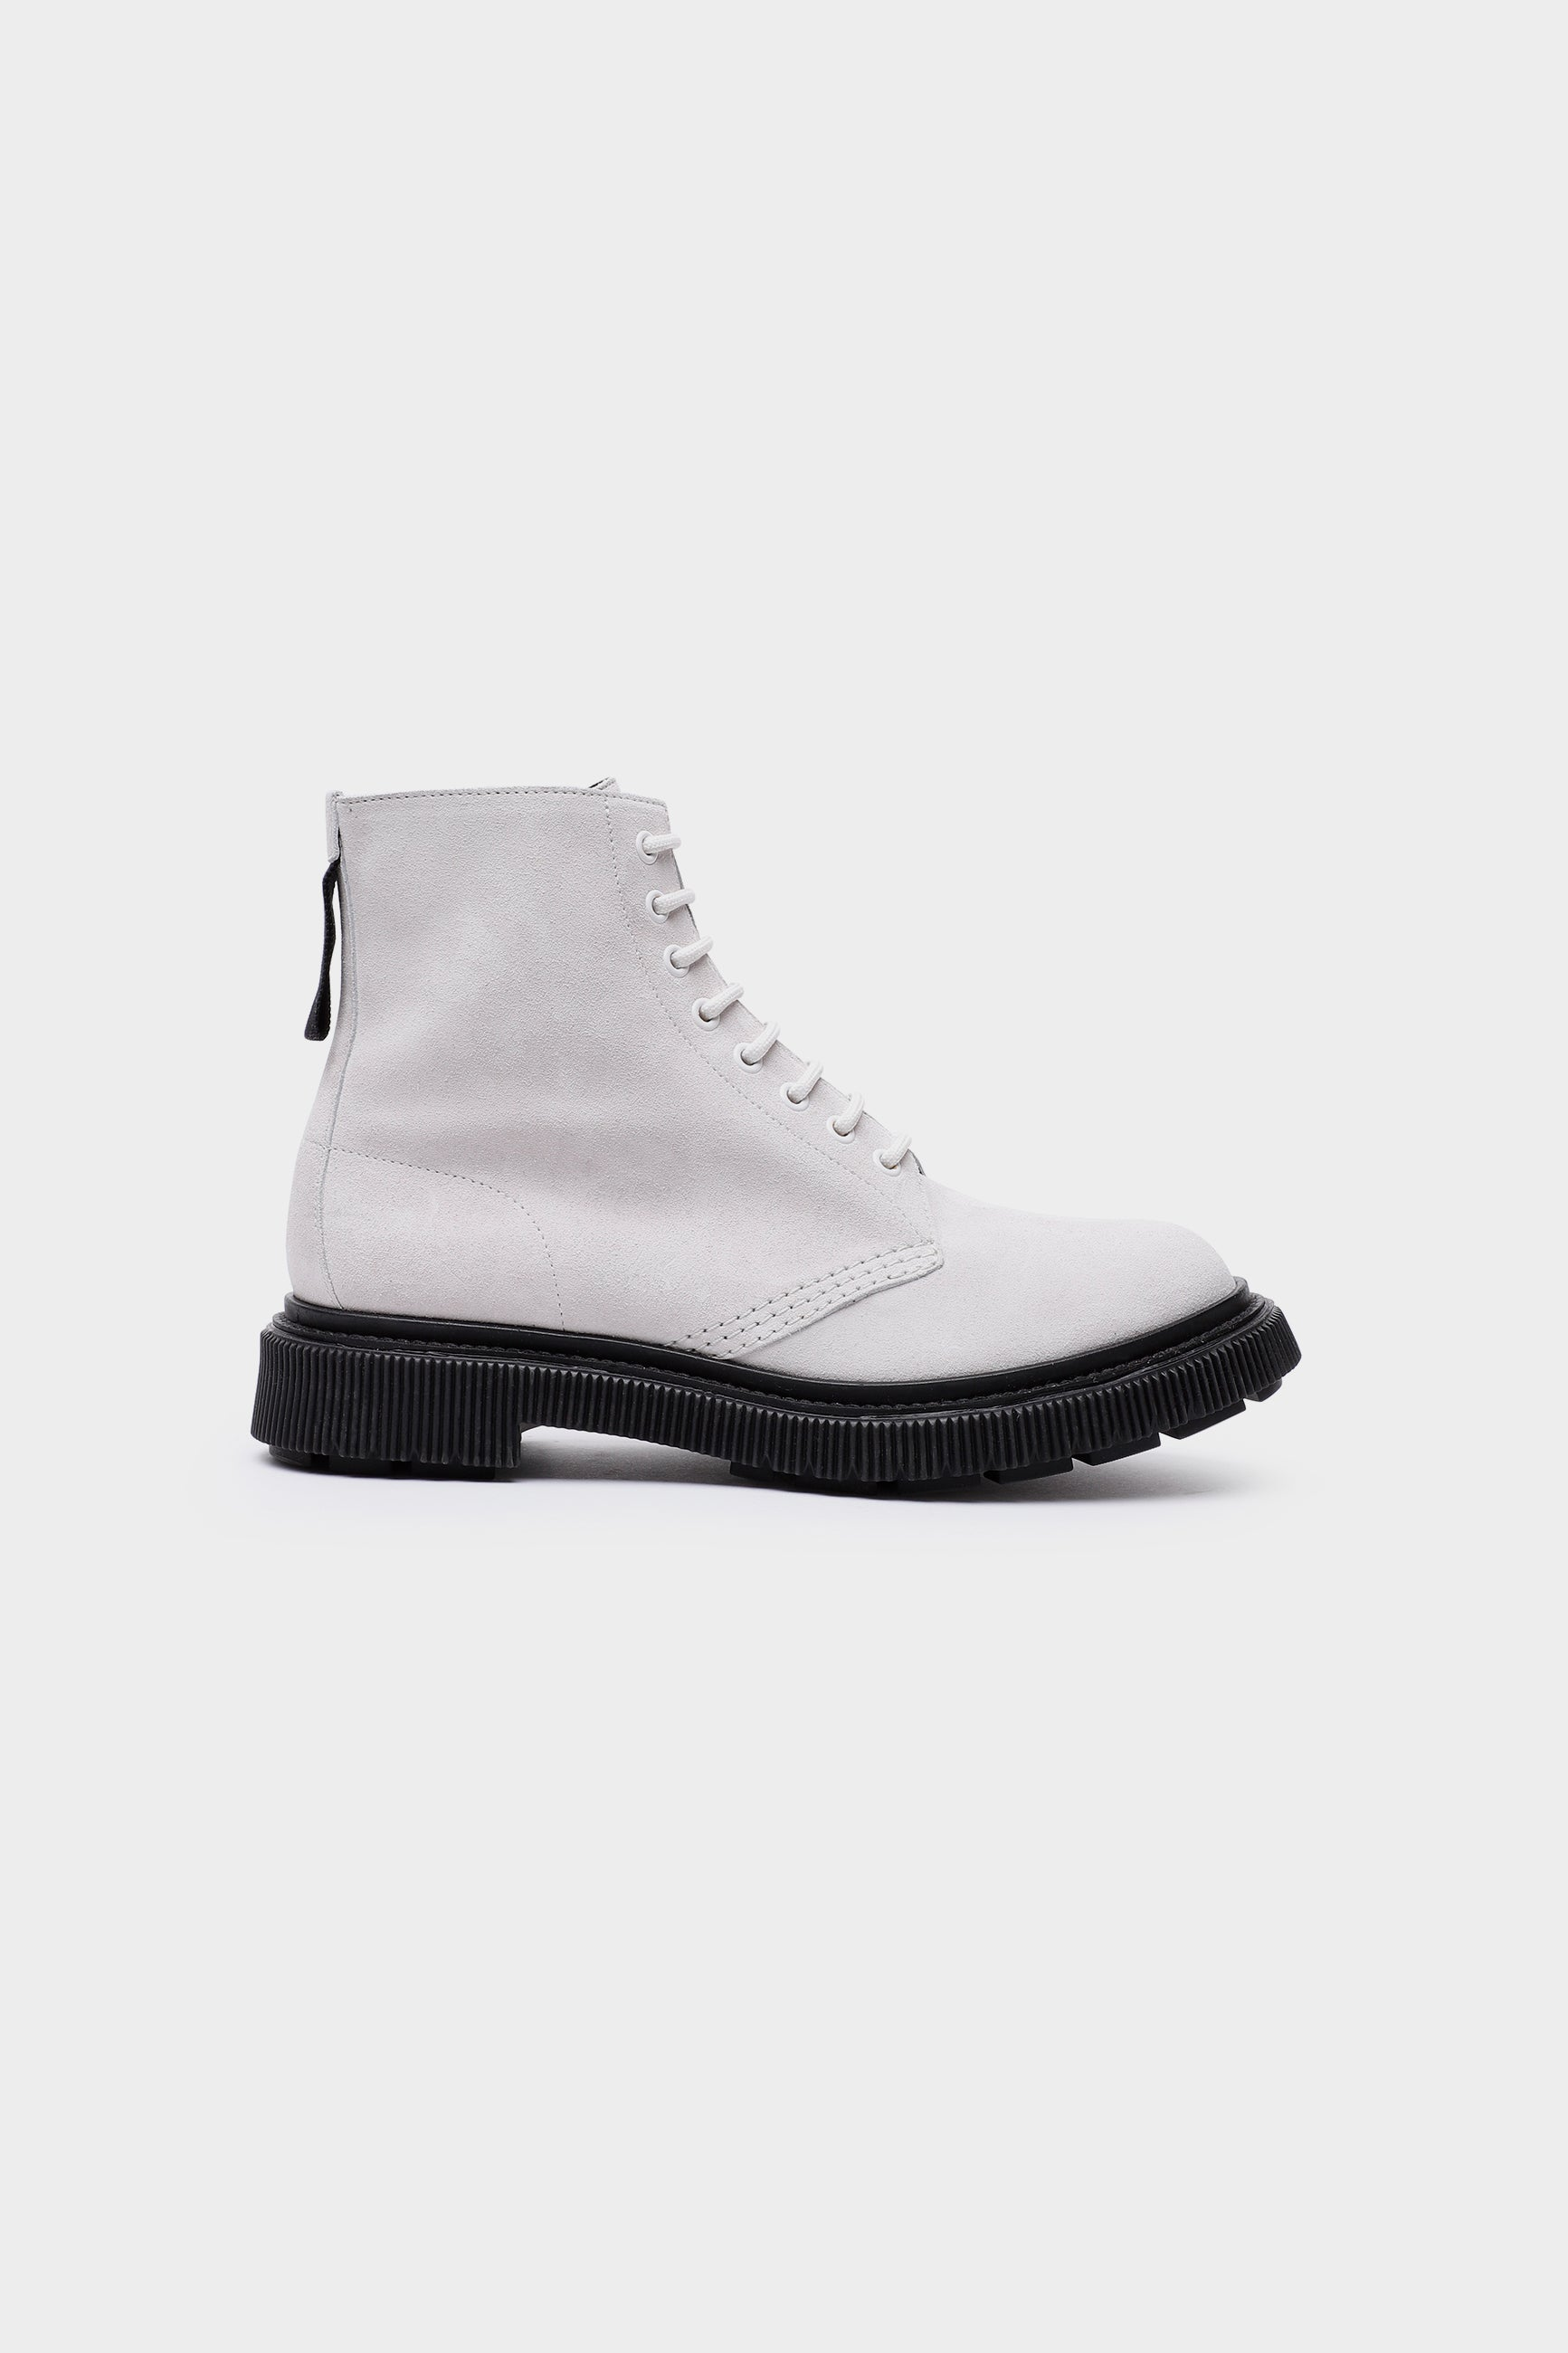 Études Type 129 Off White Shoes 2